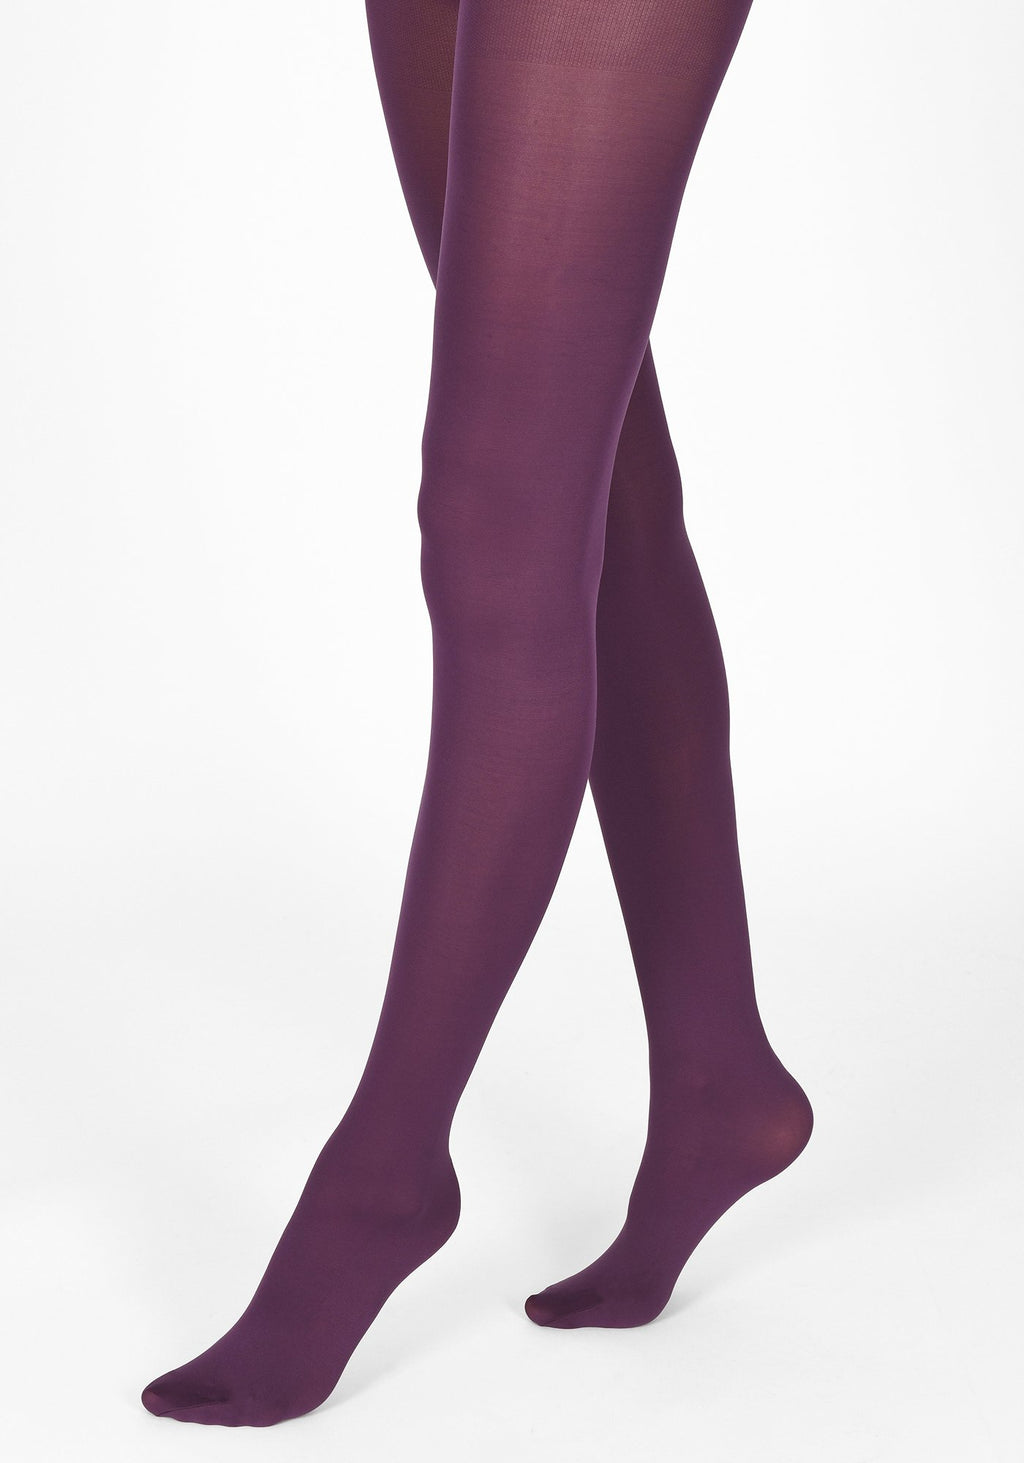 acai purple tights 60 denier 1